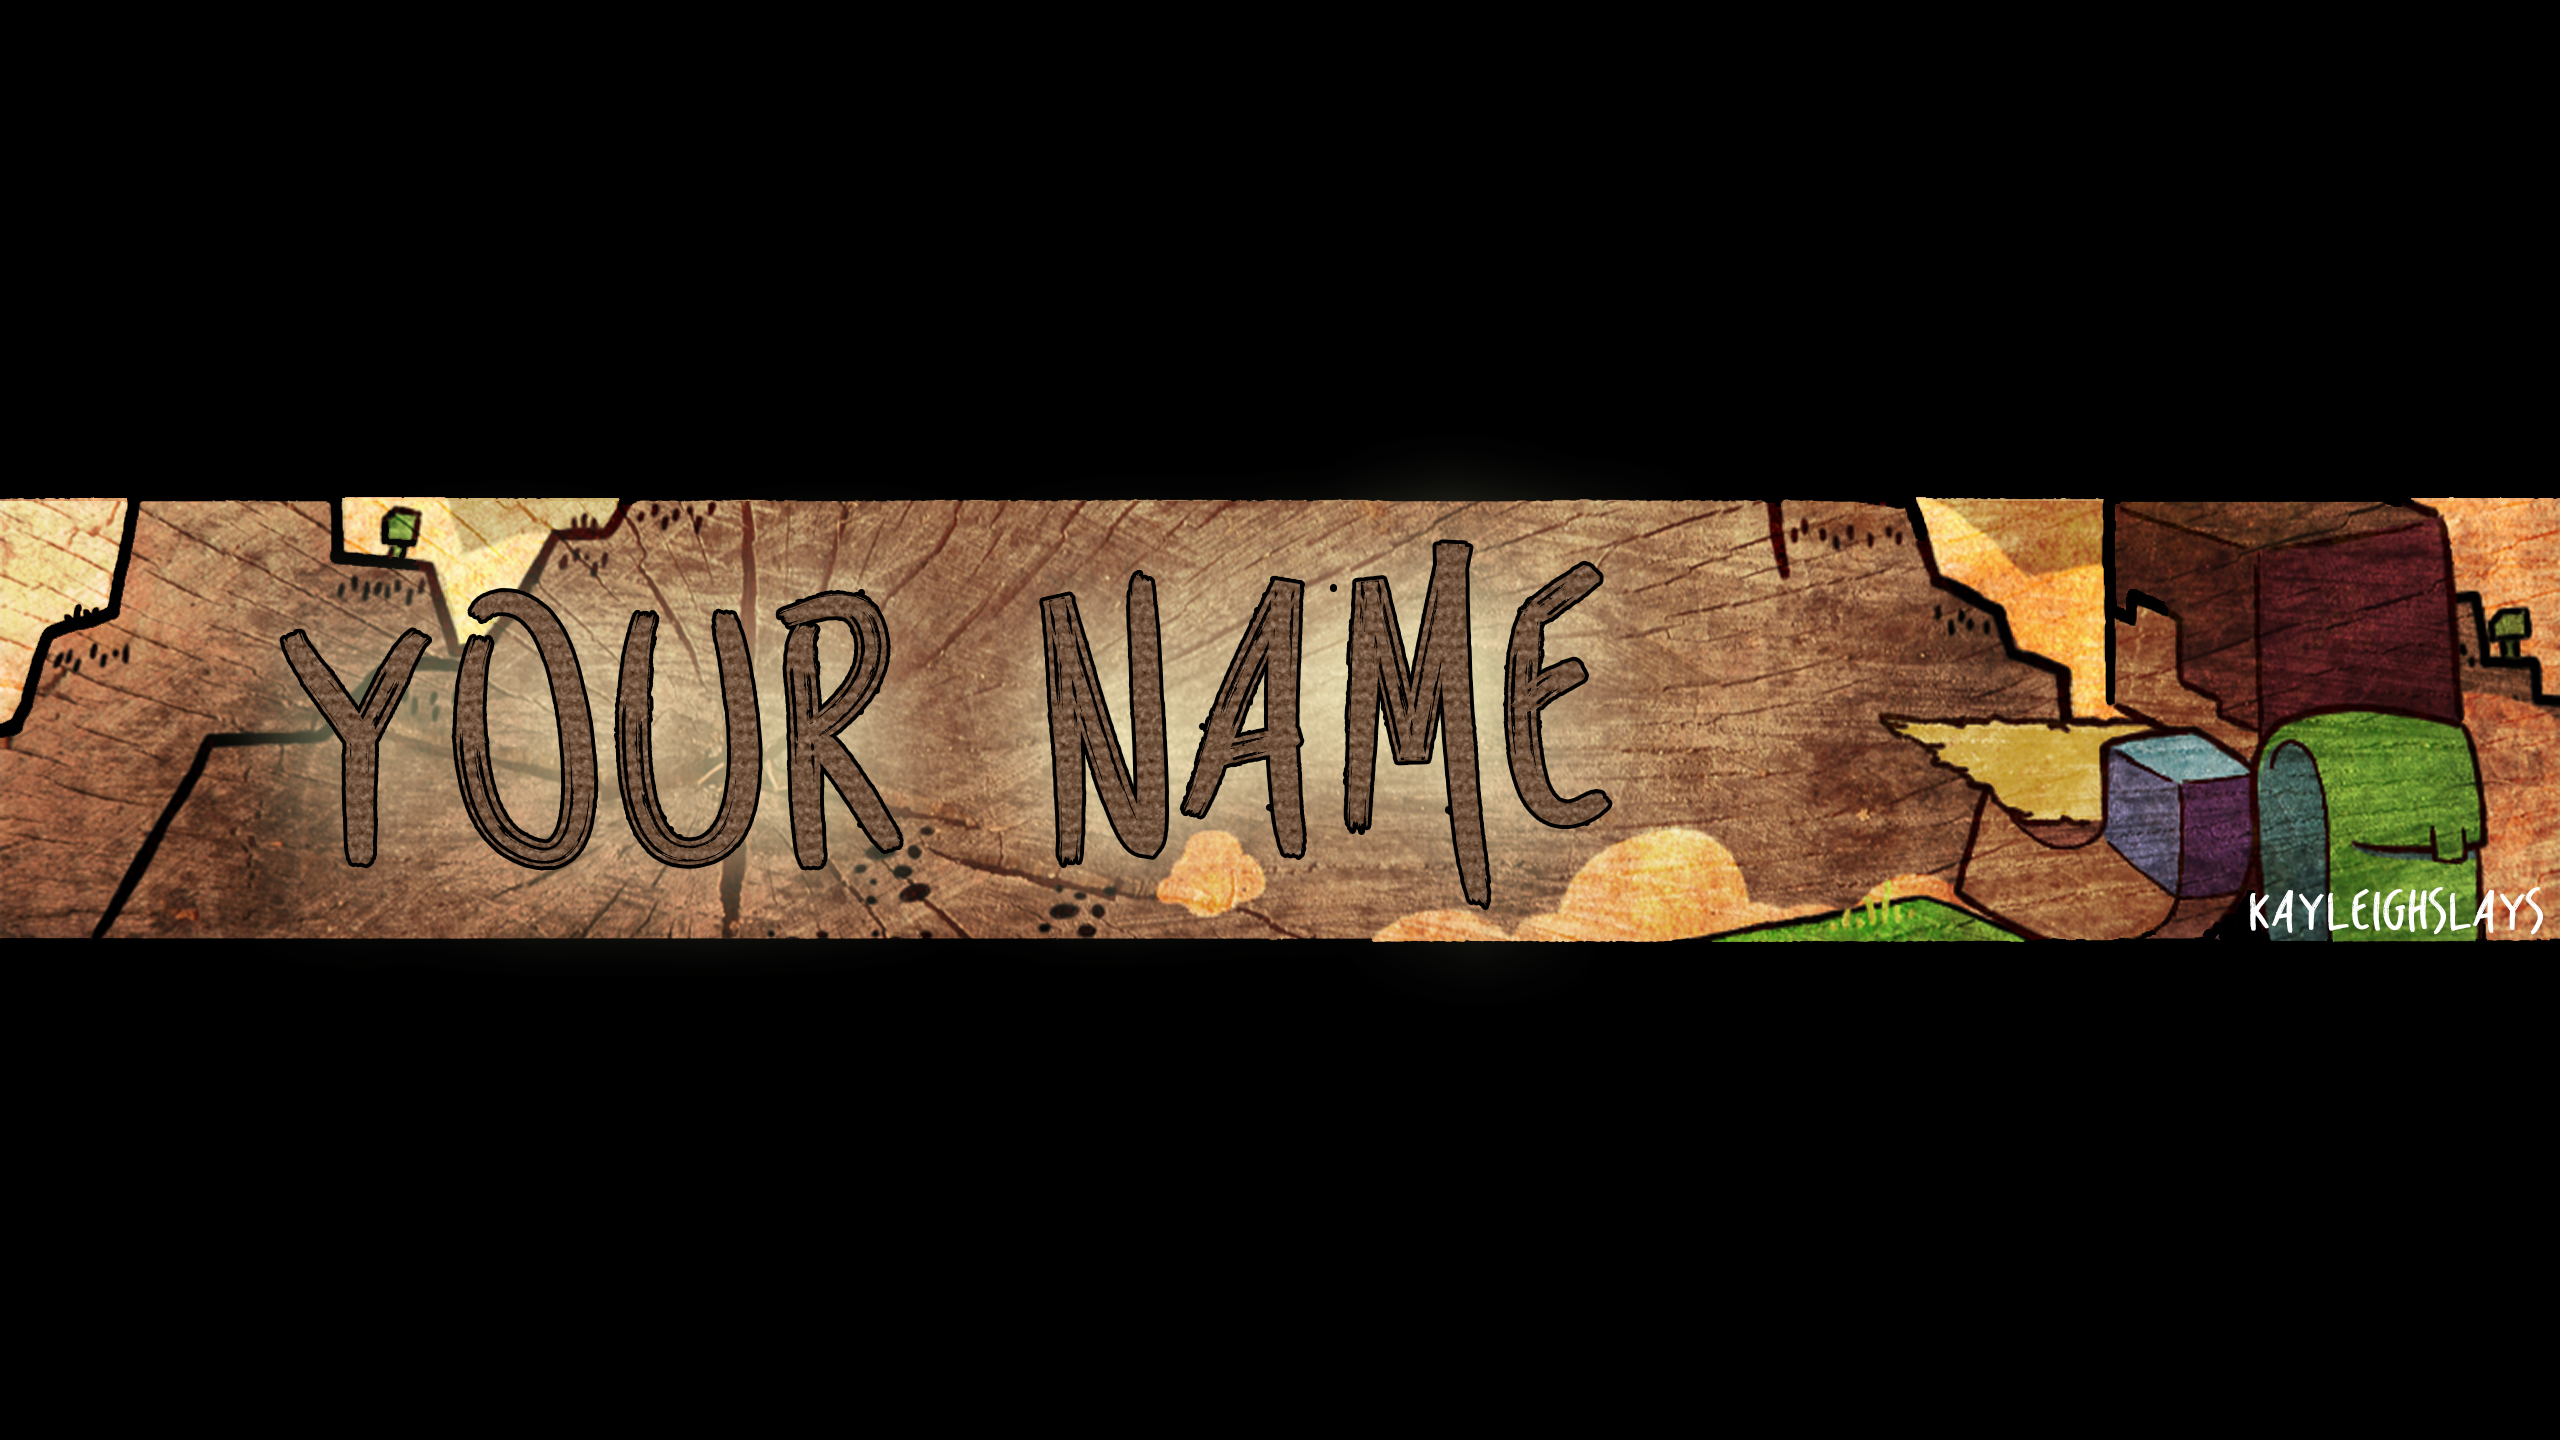 steves adventure youtube channel art template by kayleighslays